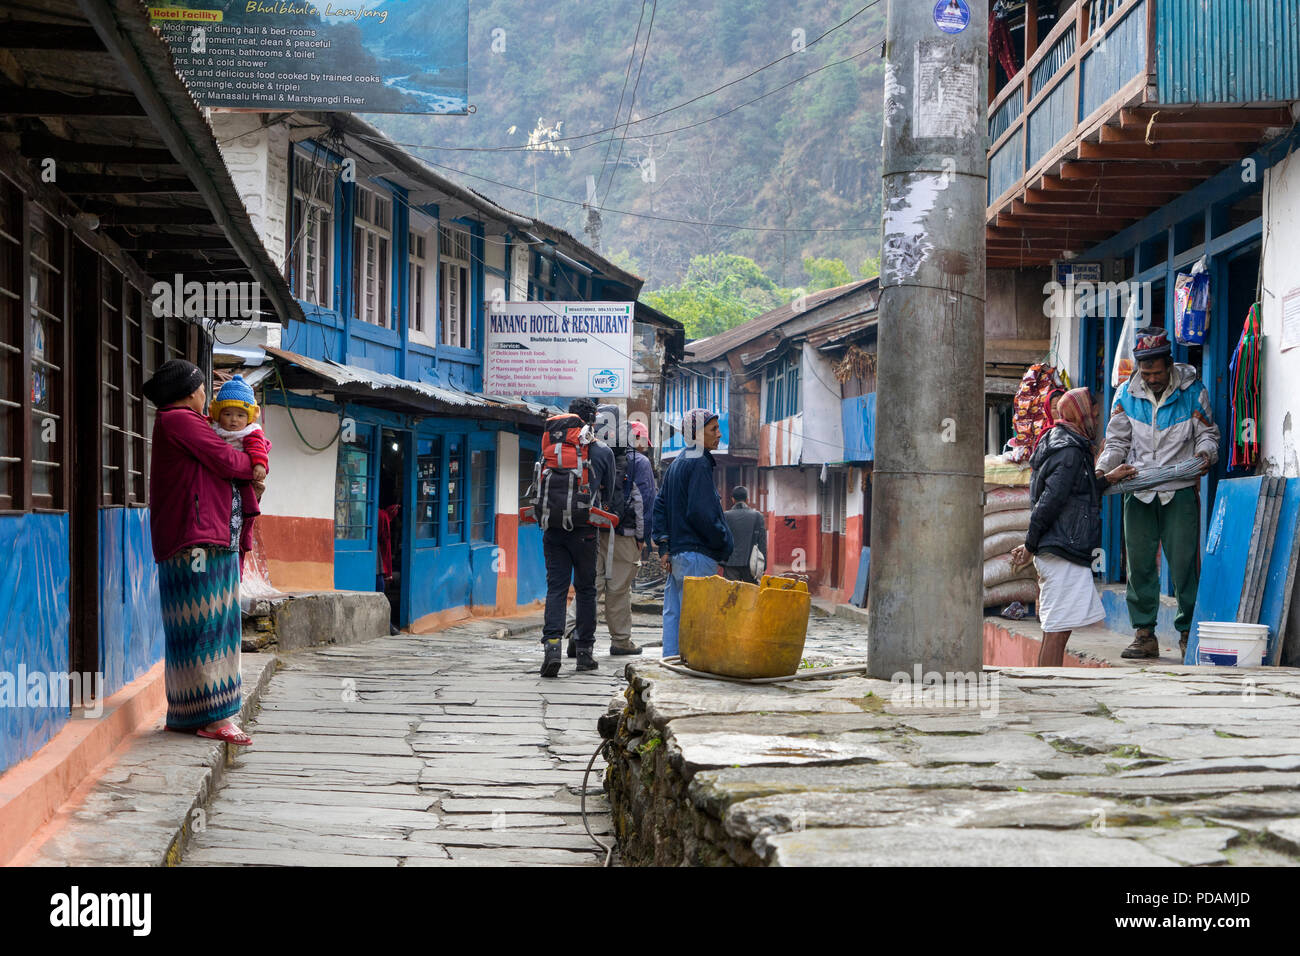 Local people and trekkers in the small village of Bhulbhule, at the start of the Annapurna Circuit, Nepal. - Stock Image